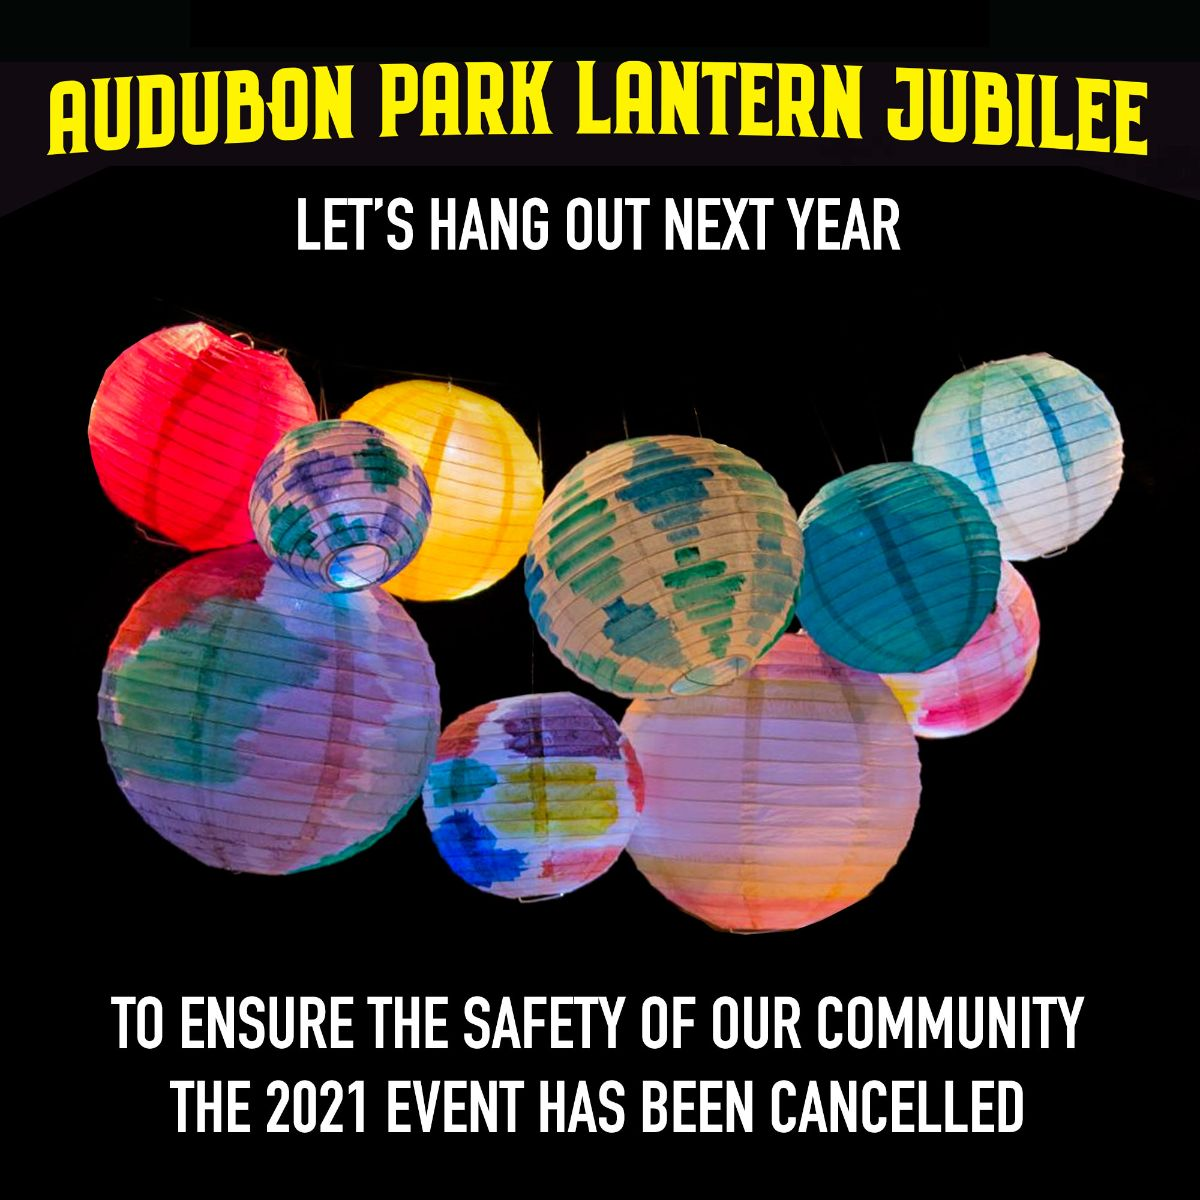 Audubon Park Lantern Jubilee - Let's Hand out Next Year! To ensure the safety of our community, the 2021 event has been cancelled.